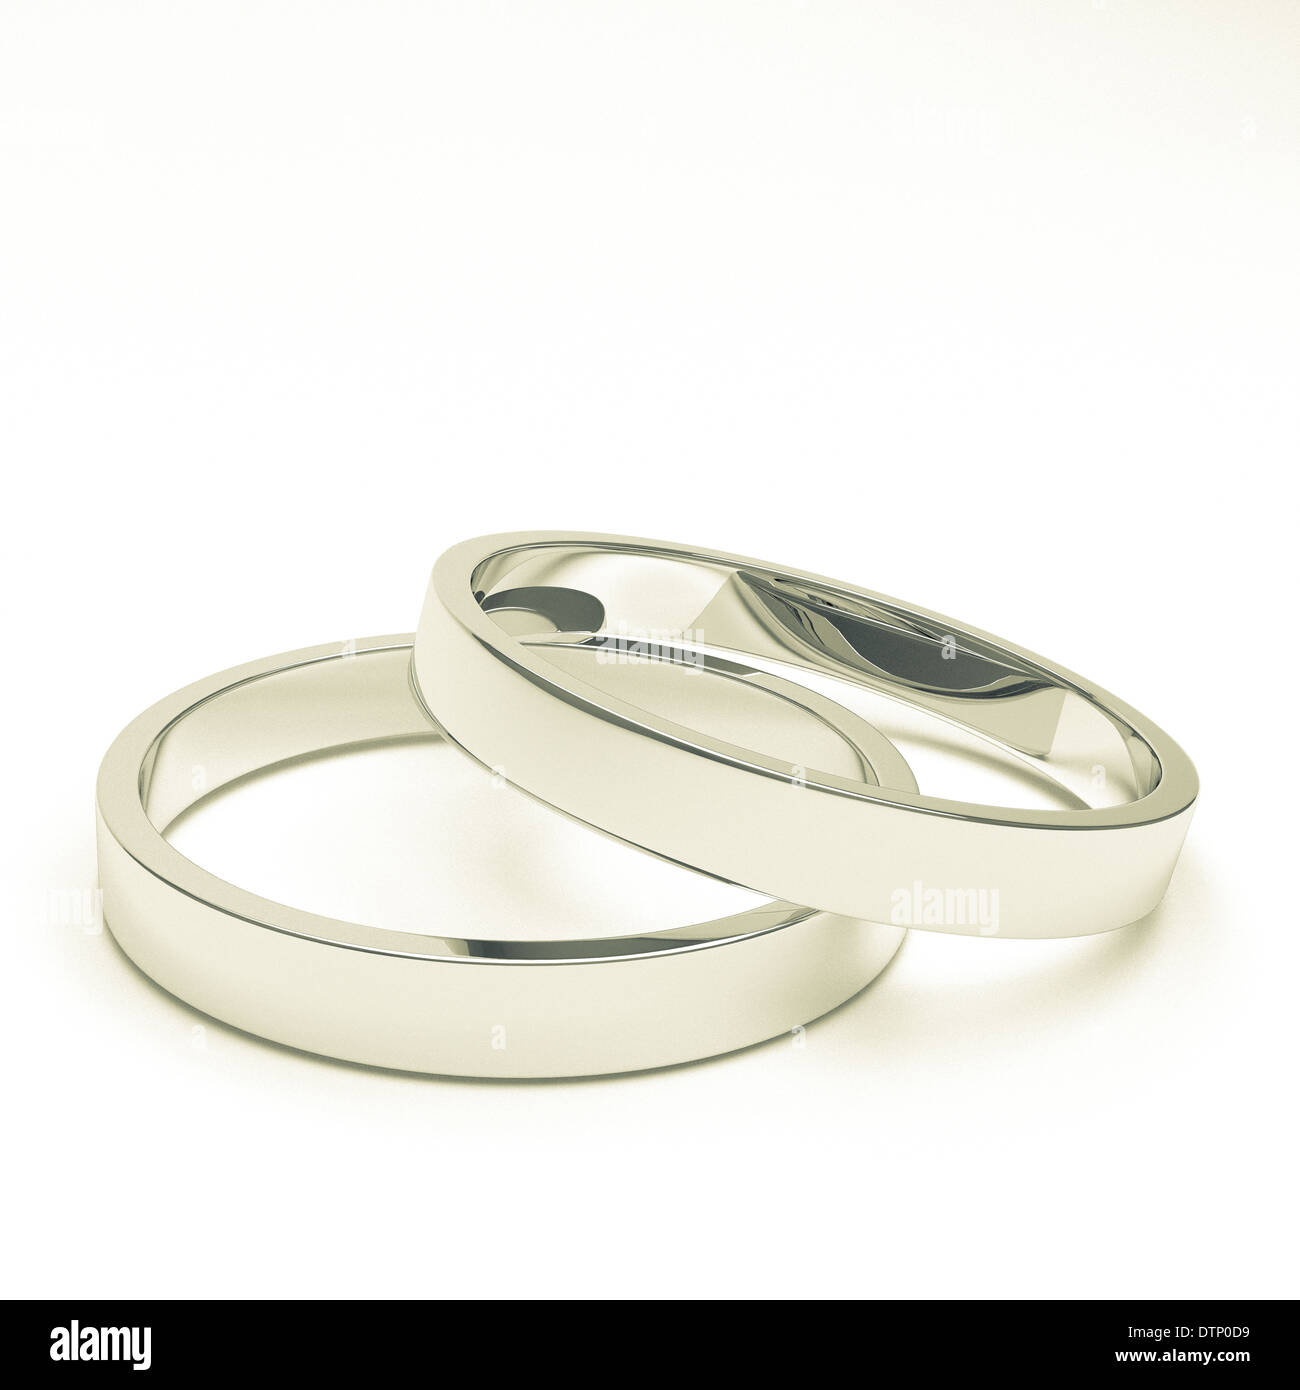 silver or platinum wedding rings - Stock Image